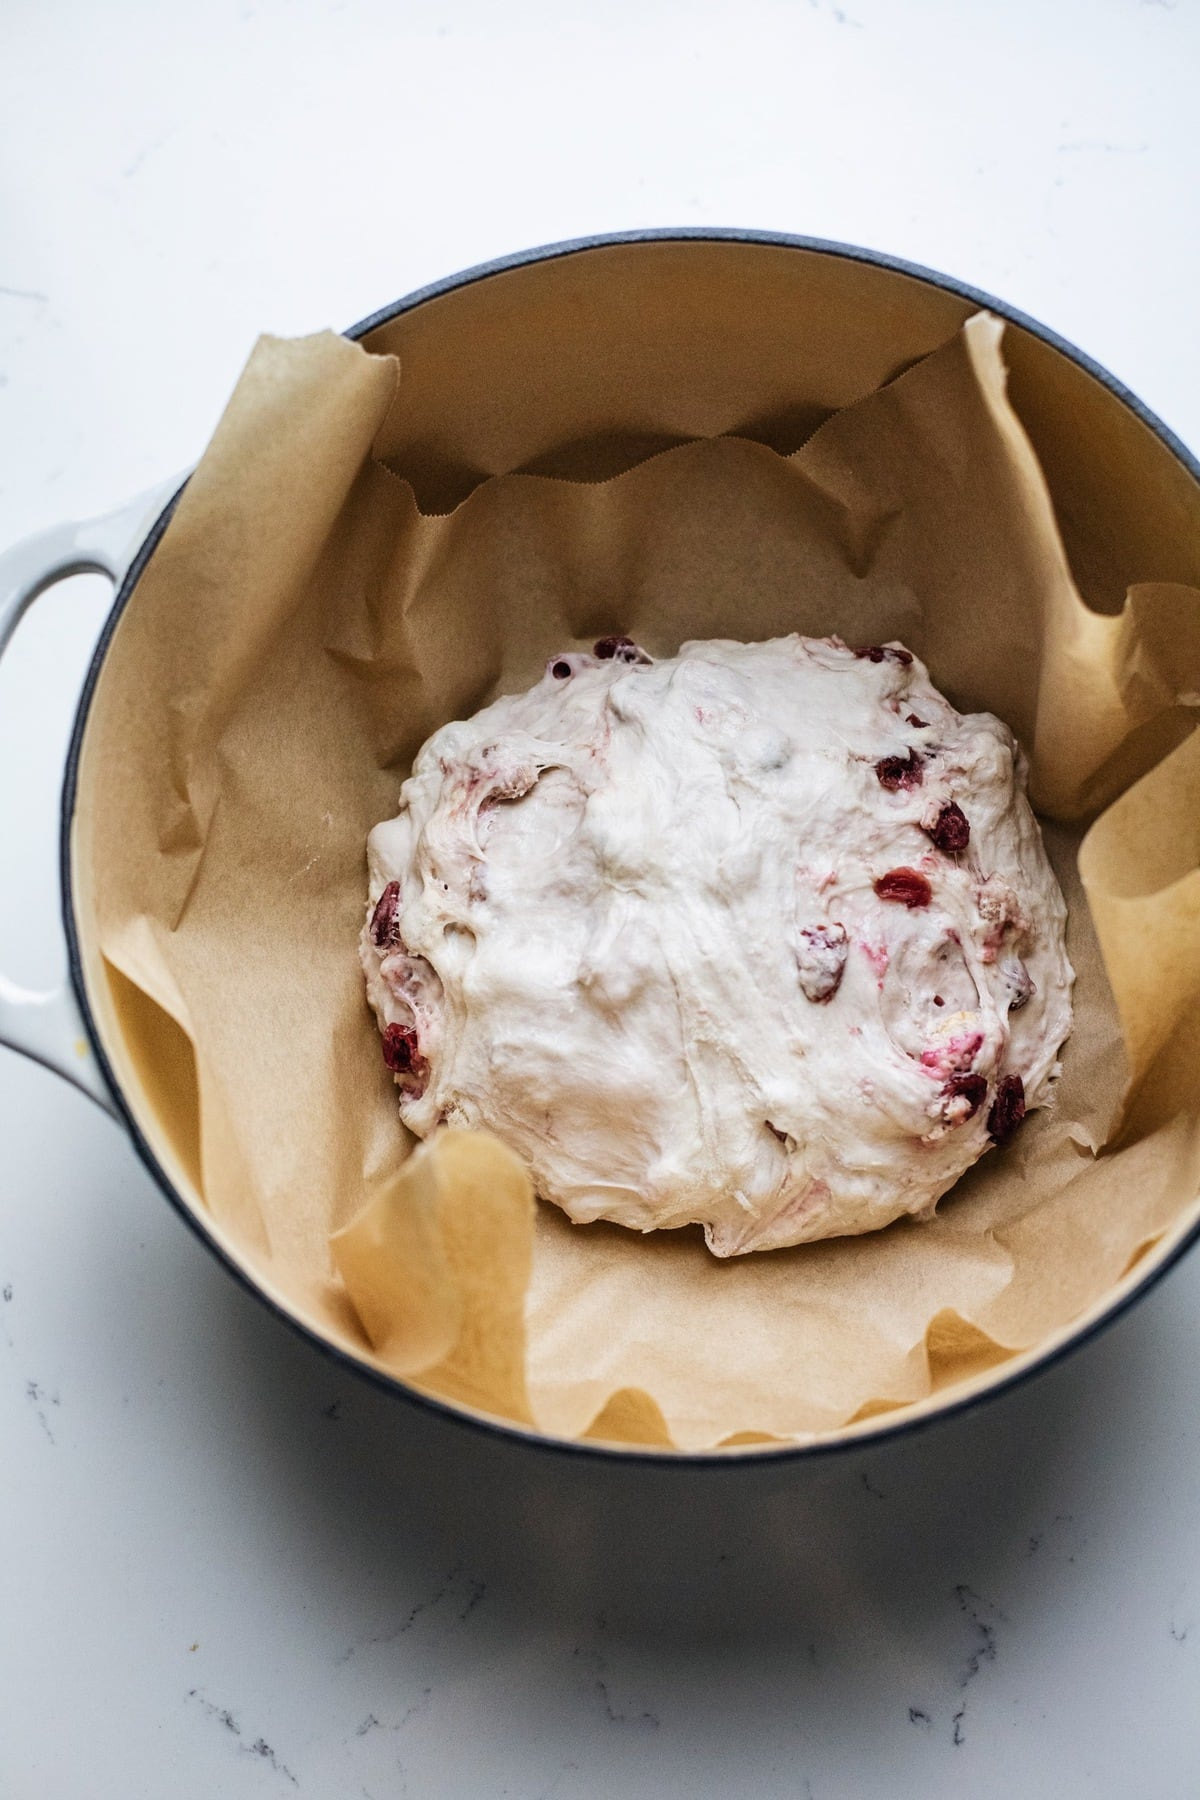 A ball of dough in a white pot with parchment paper.